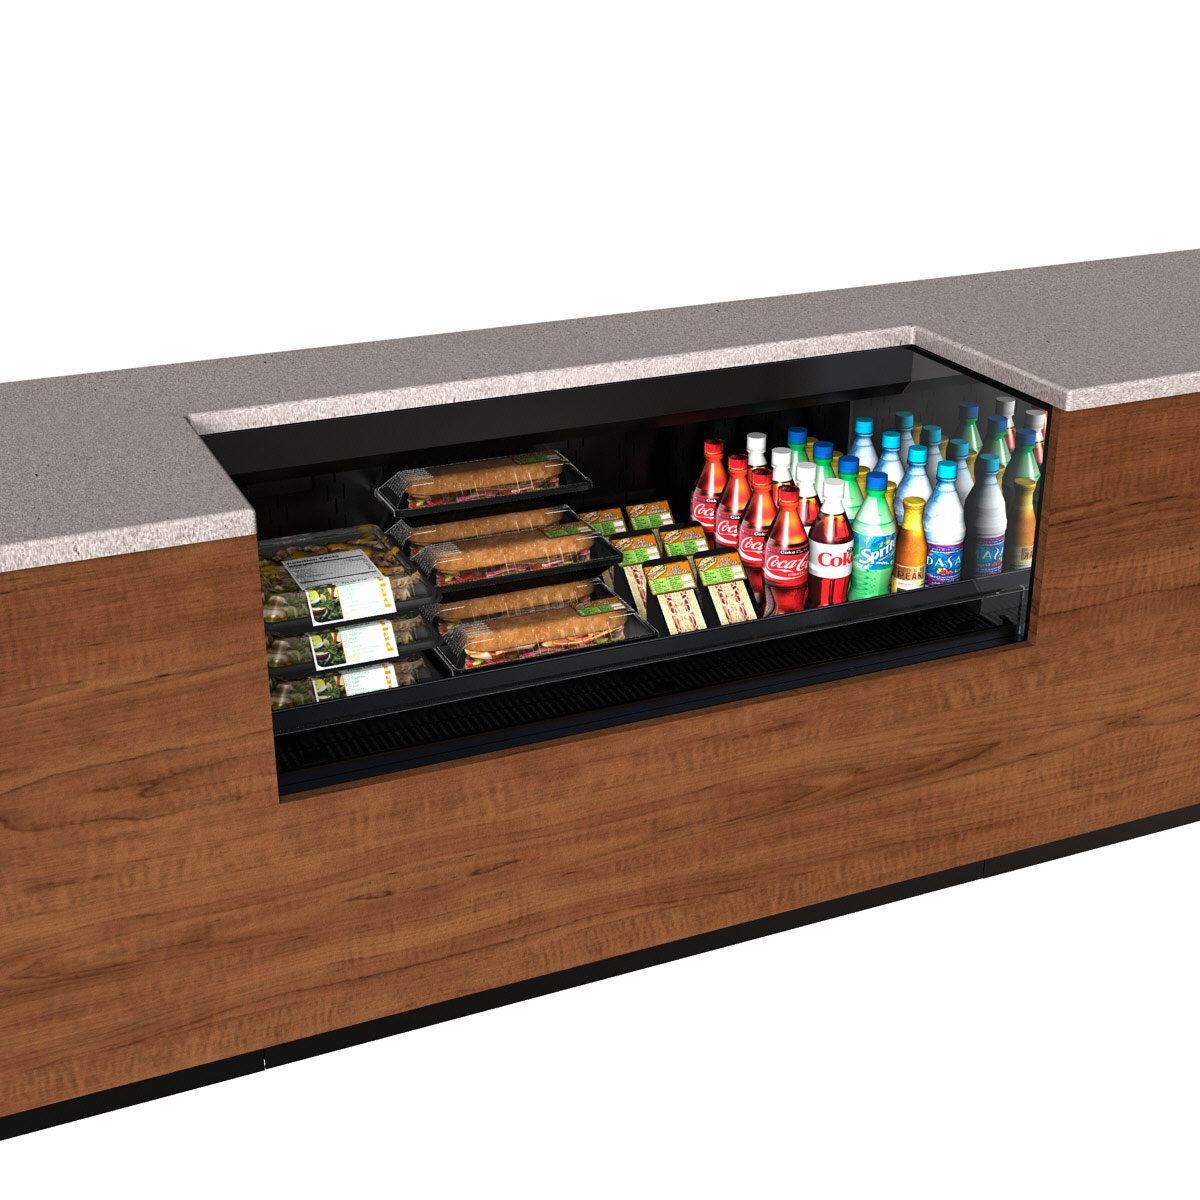 Structural Concepts CO4324R-UC-E3 merchandiser, open refrigerated display